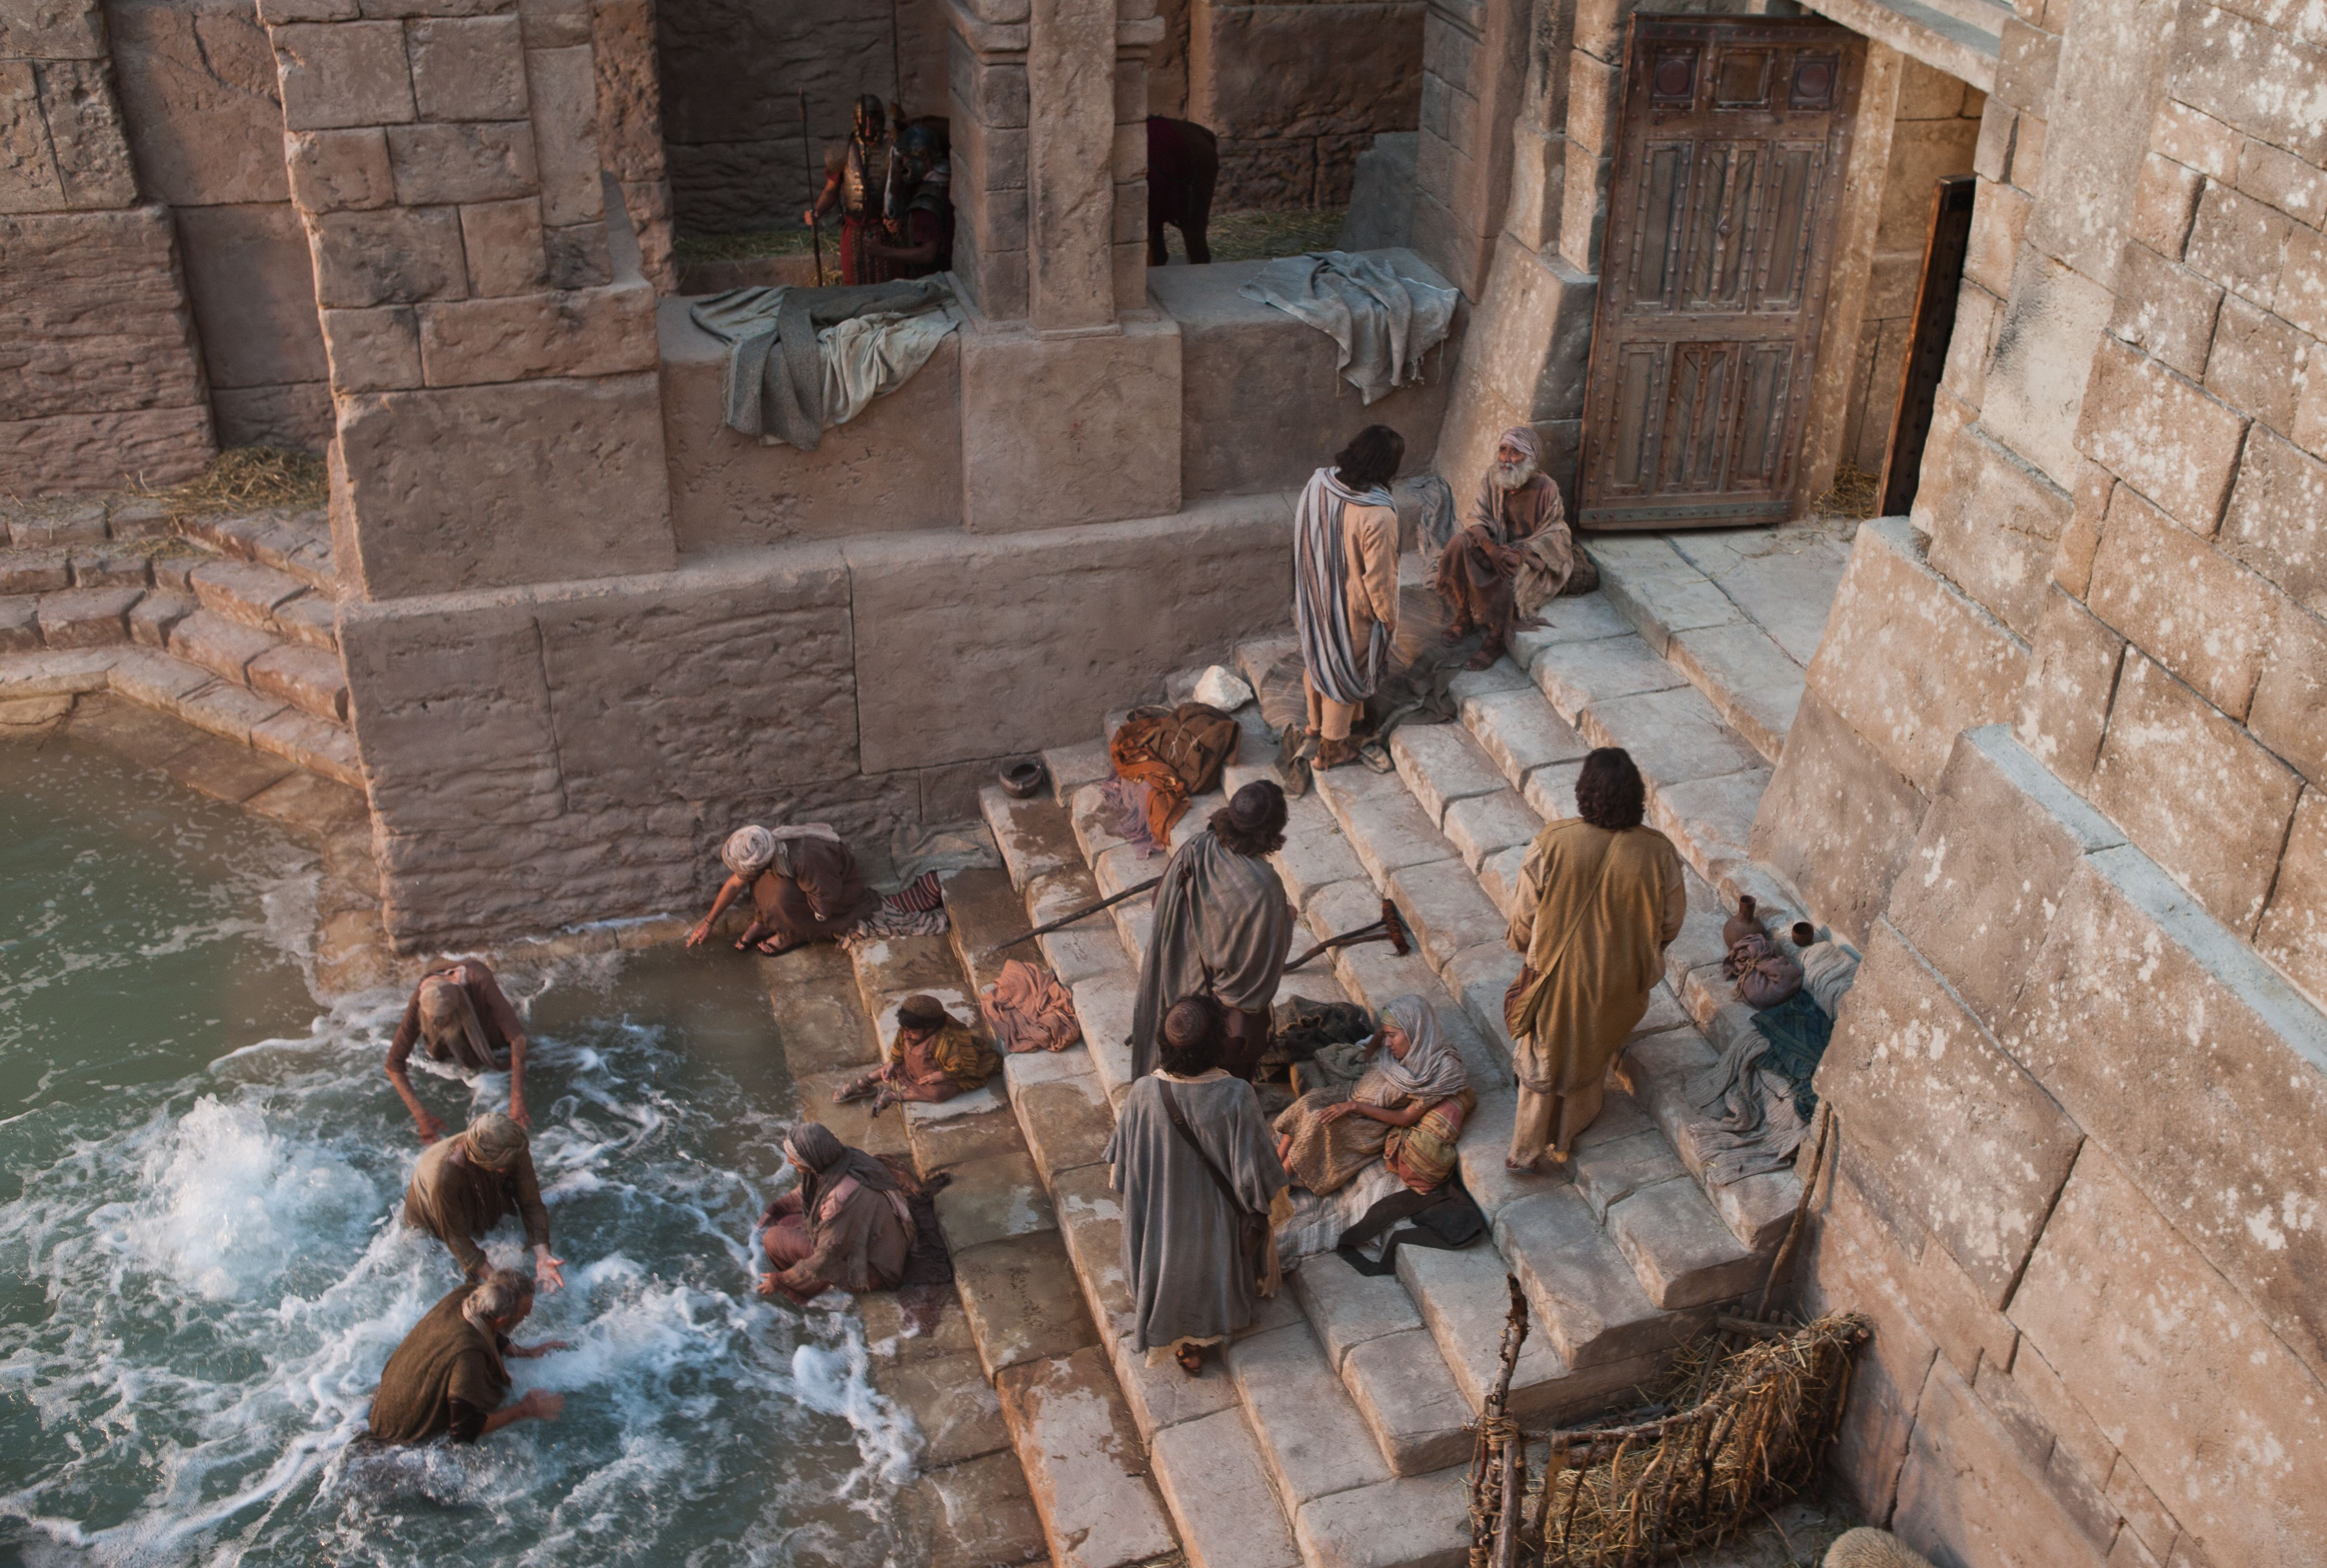 A group of people at the pool of Bethesda trying to be first to enter the water.